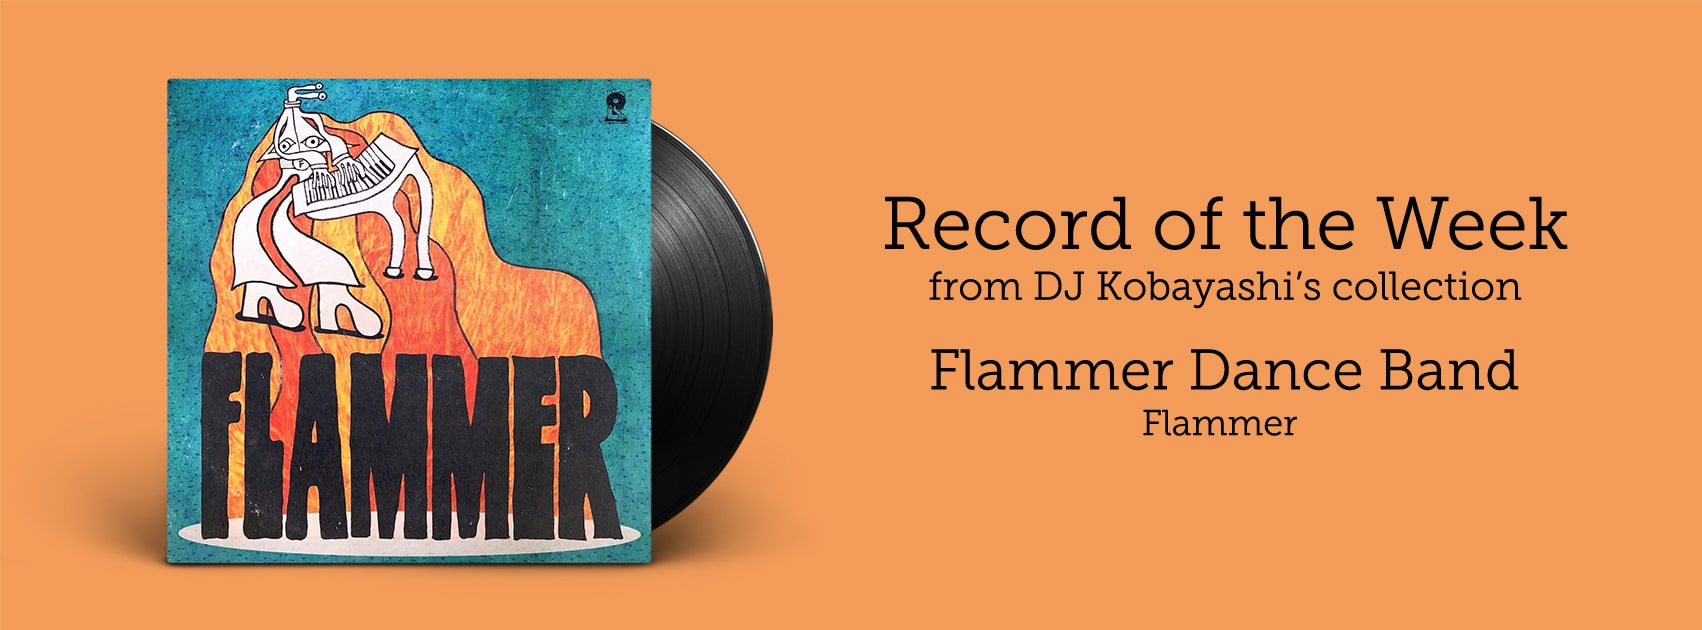 Flammer Dance Band